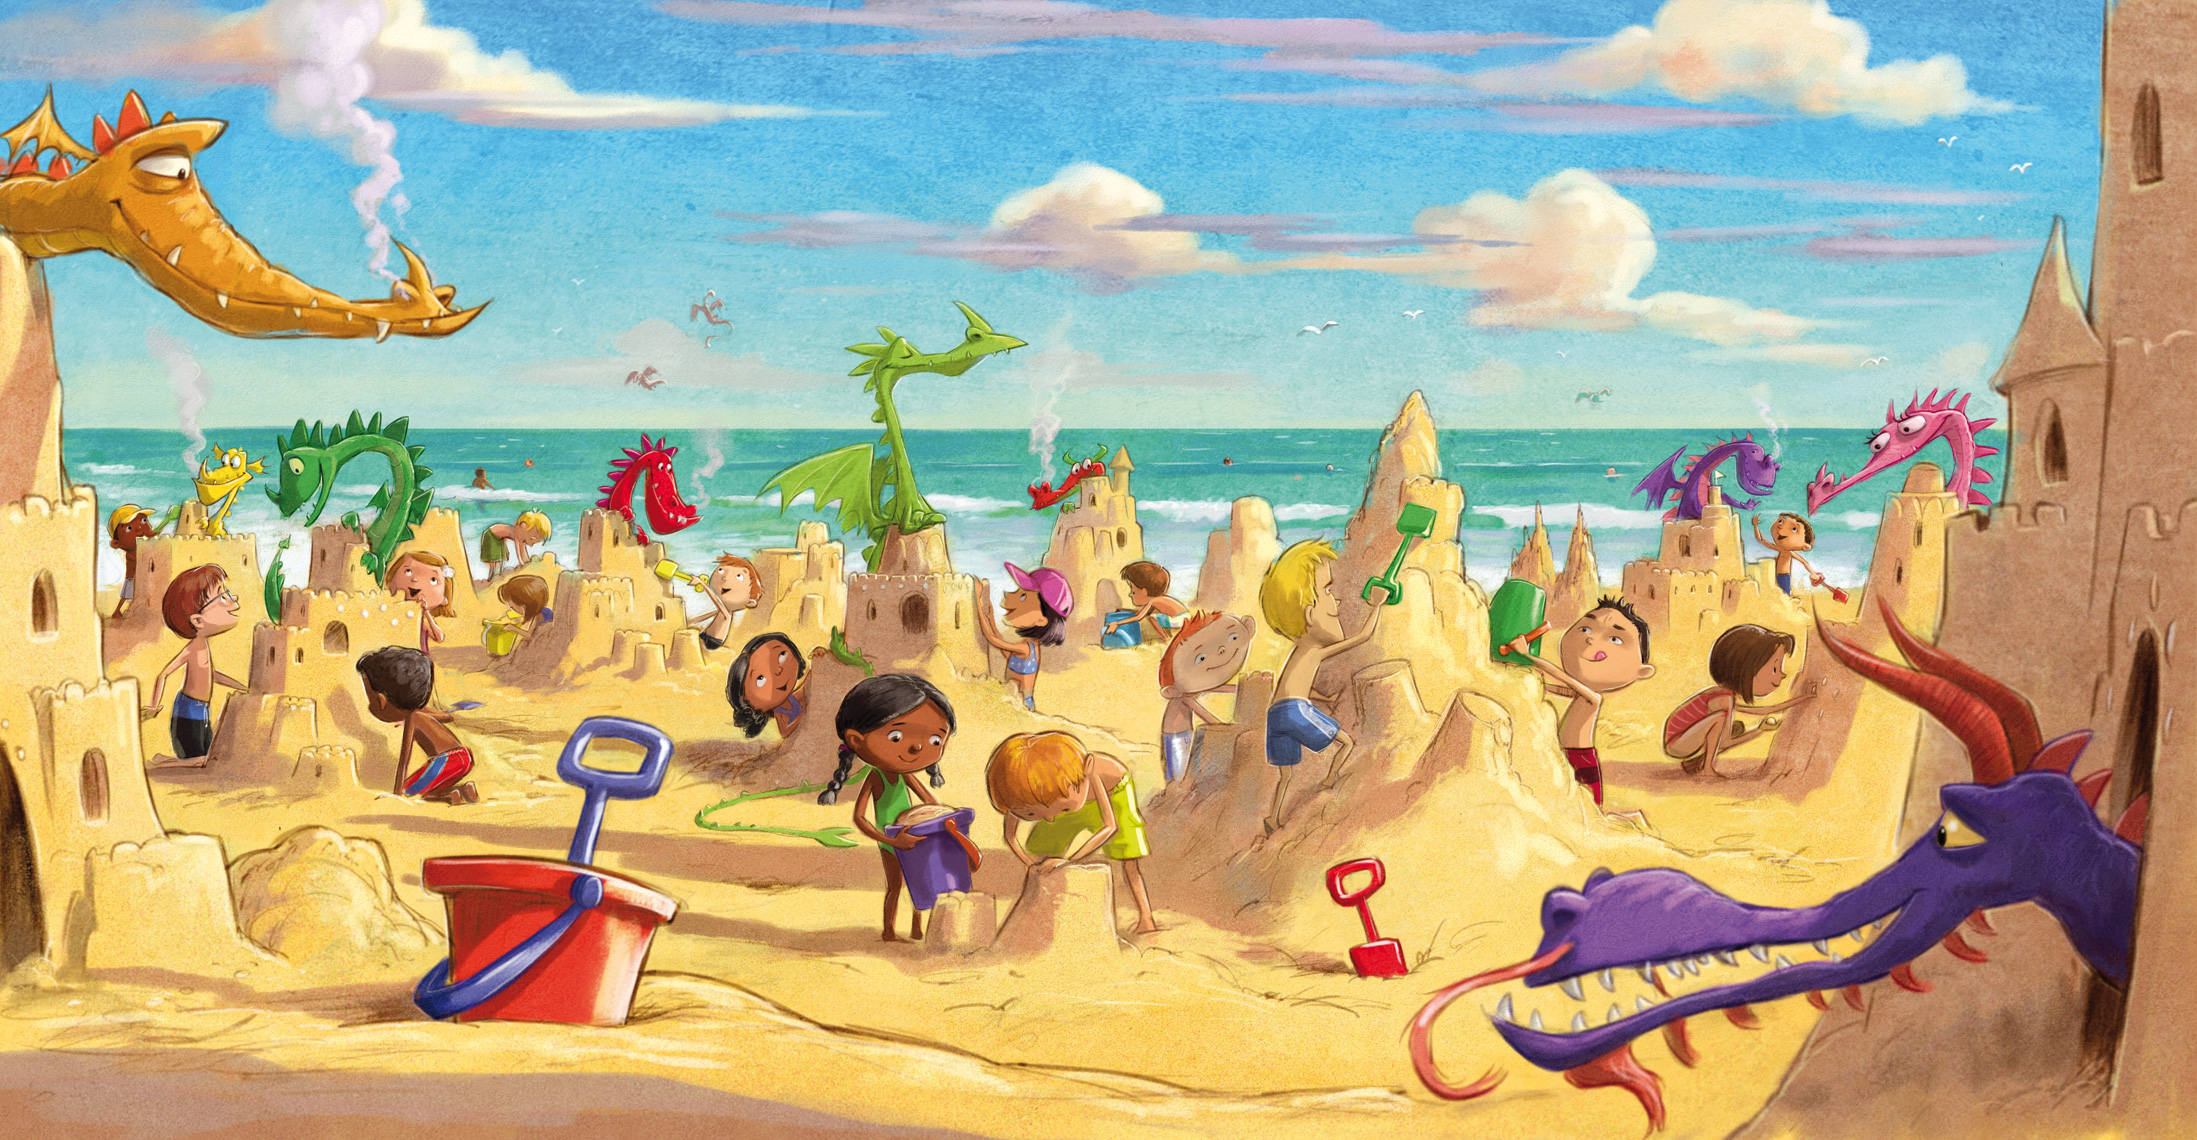 mcwilliam_childrens_dragons-sandcastles.jpg